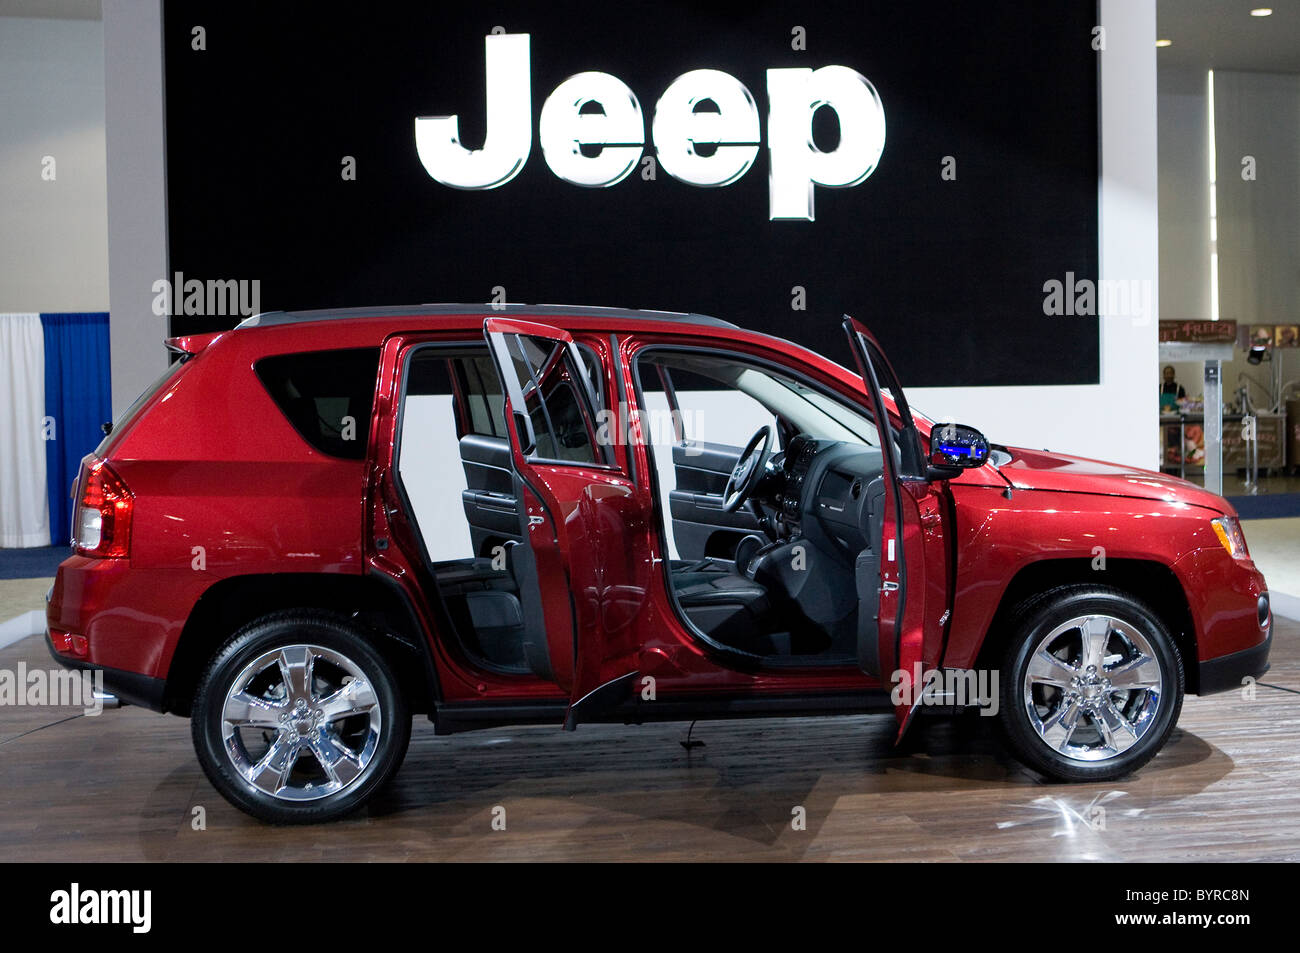 Dodge, Chrysler, Jeep, and Fiat vehicles at the Washington Auto Show. - Stock Image